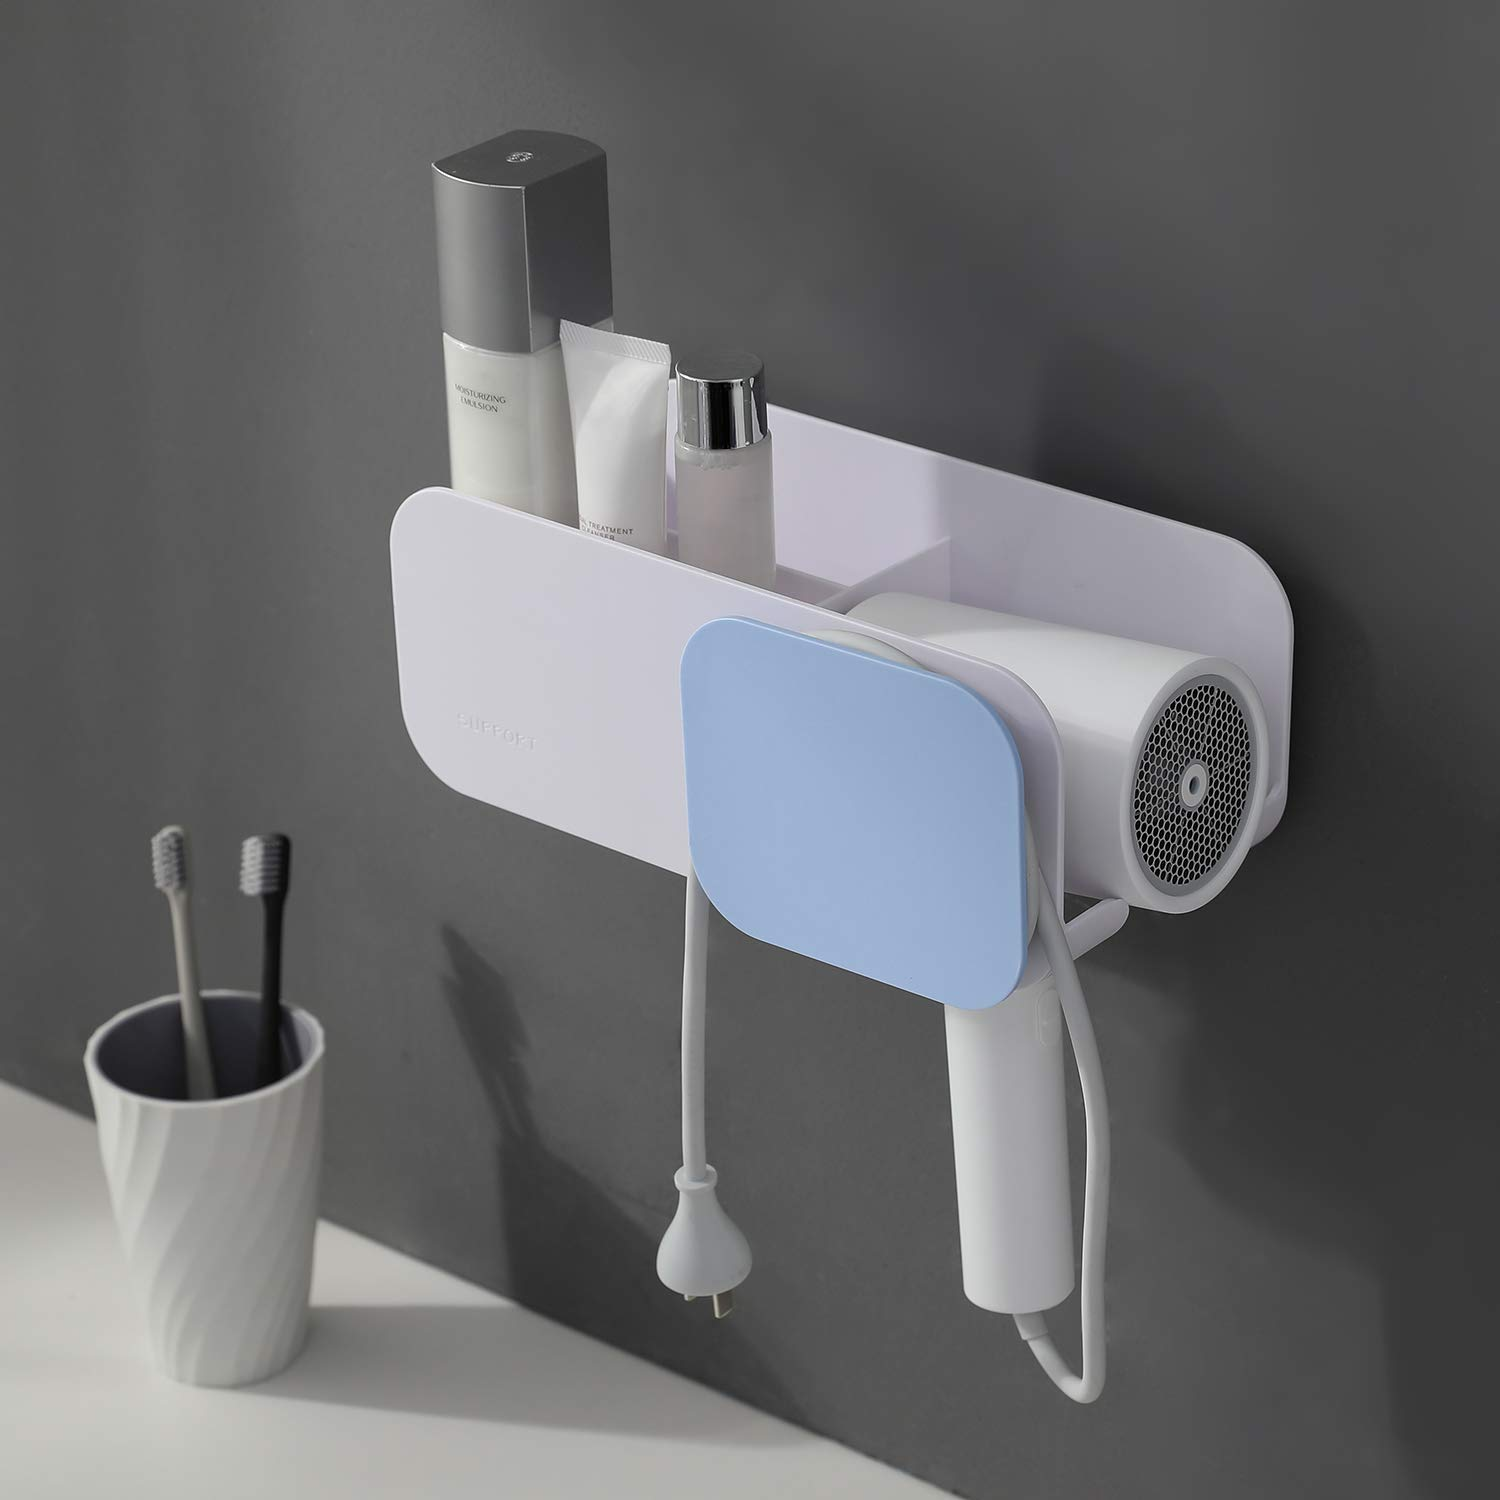 YIGII Adhesive Hair Dryer Holder - No Drilling Hair Dryer Rack Hair Care Styling Tool Organizer Holder for Bathroom Wall Mount Blow Dryer Holder Storage